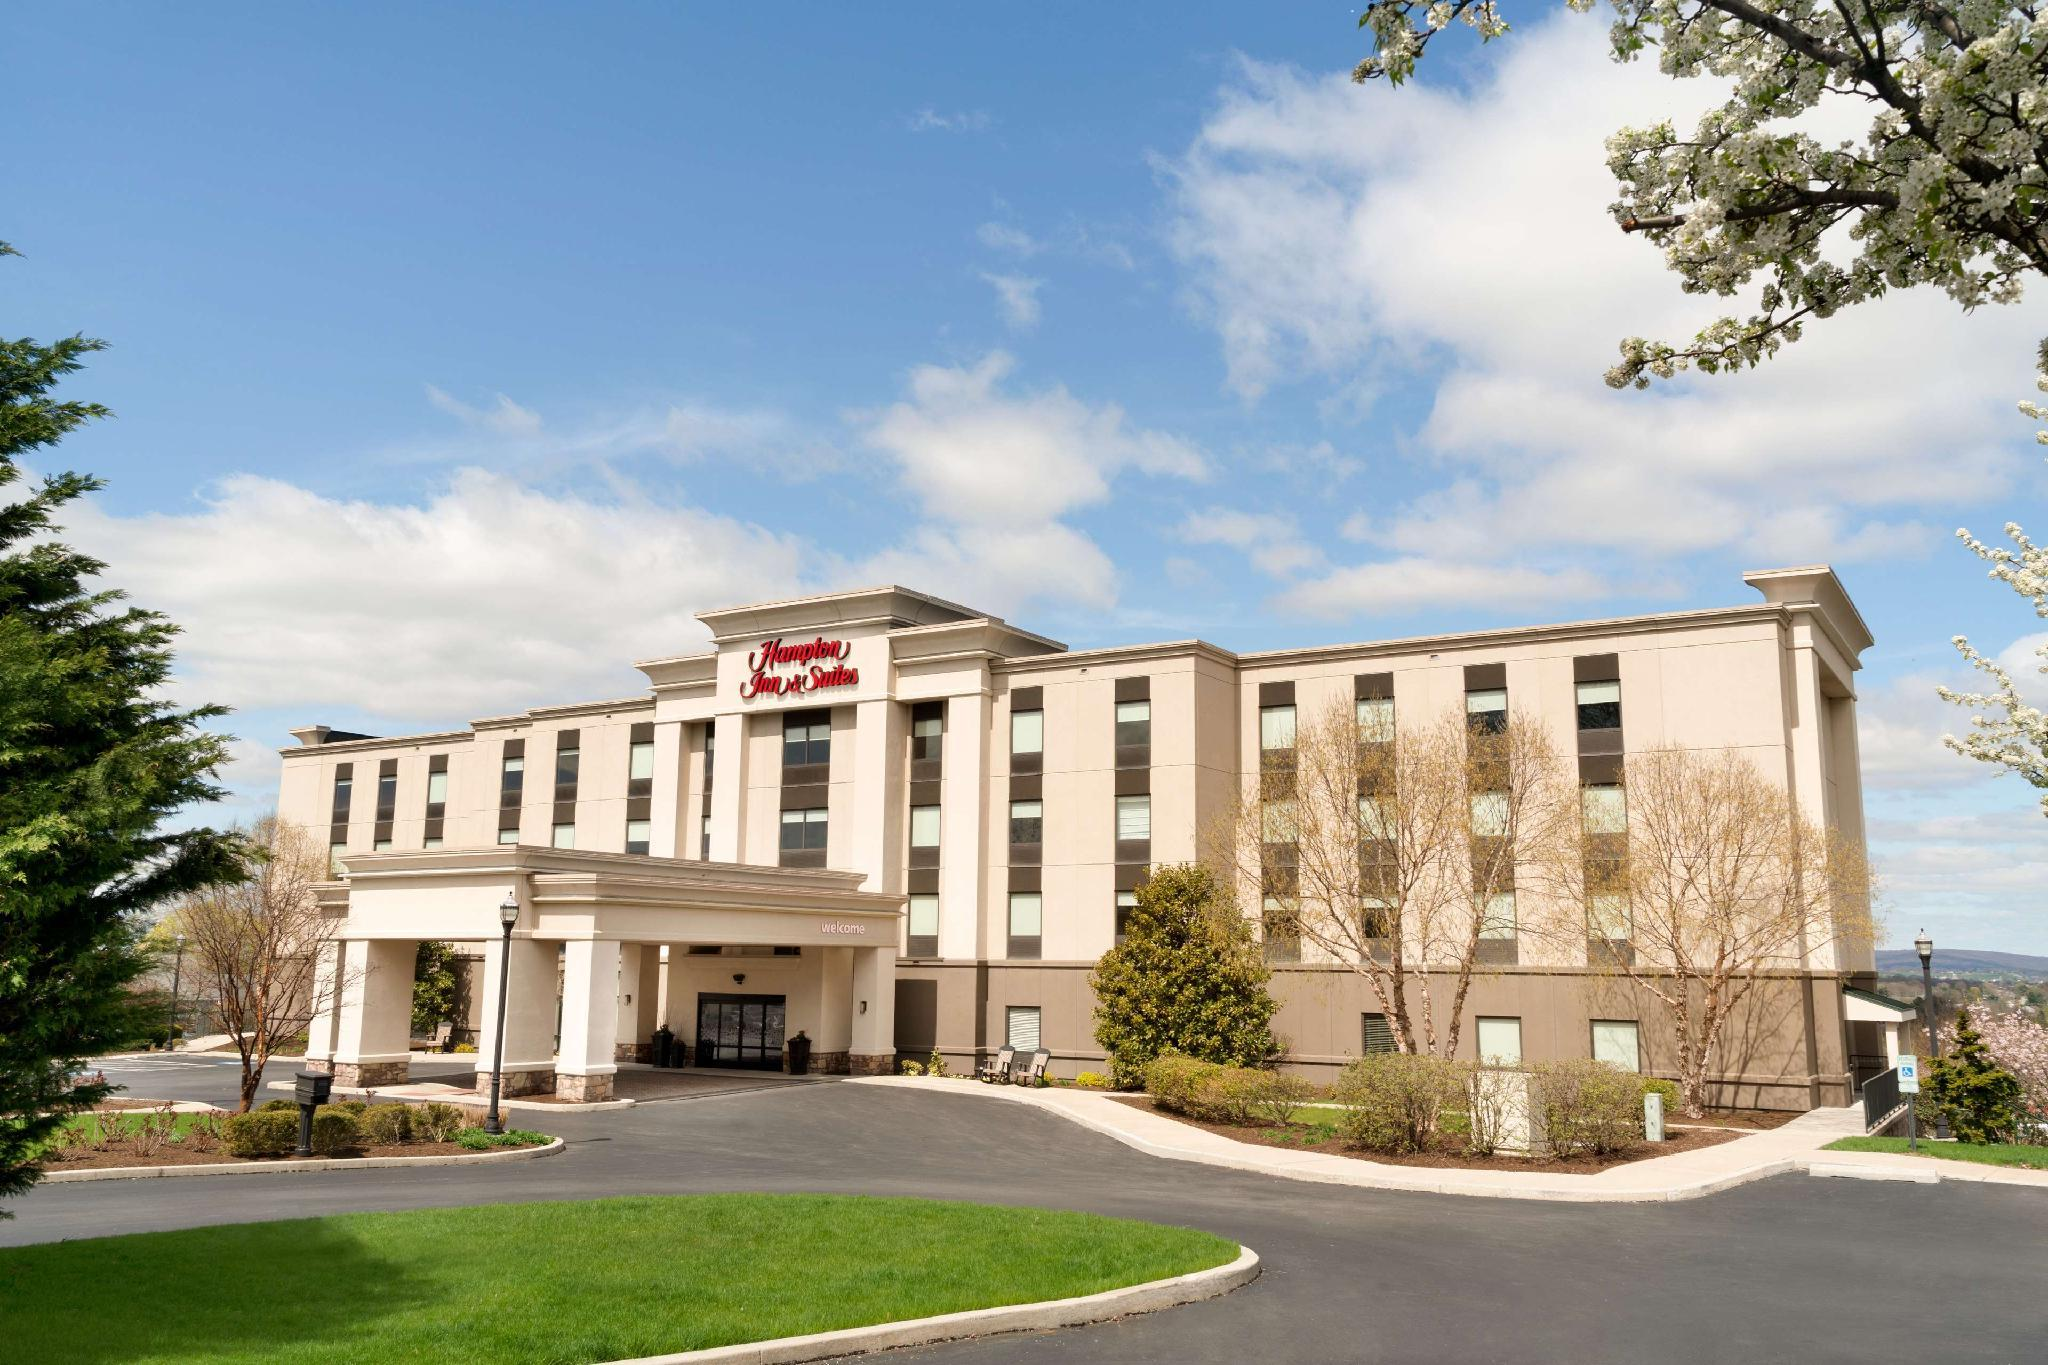 Hampton Inn and Suites Ephrata, Lancaster